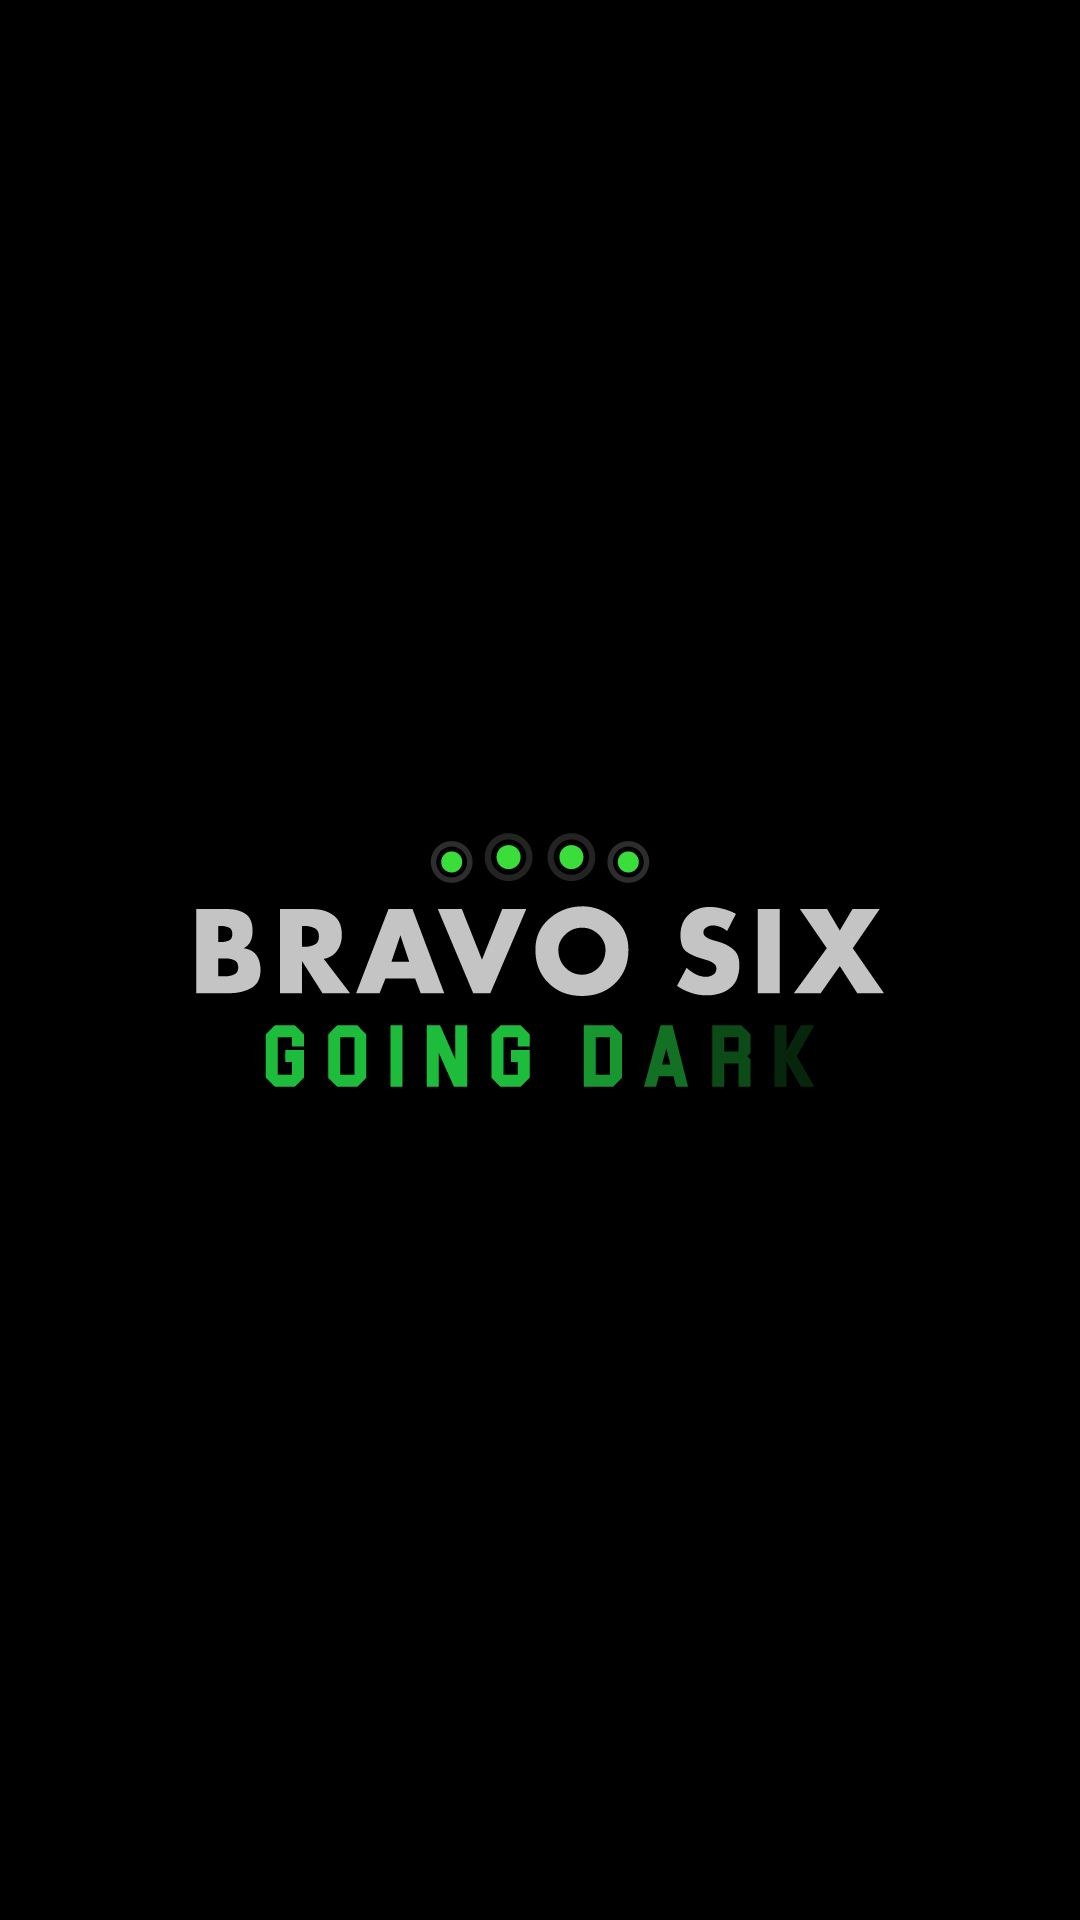 Bravo Six Going Dark Phone Wallpaper By Rahalarts Call Of Duty Warfare Call Of Duty Duty Quotes